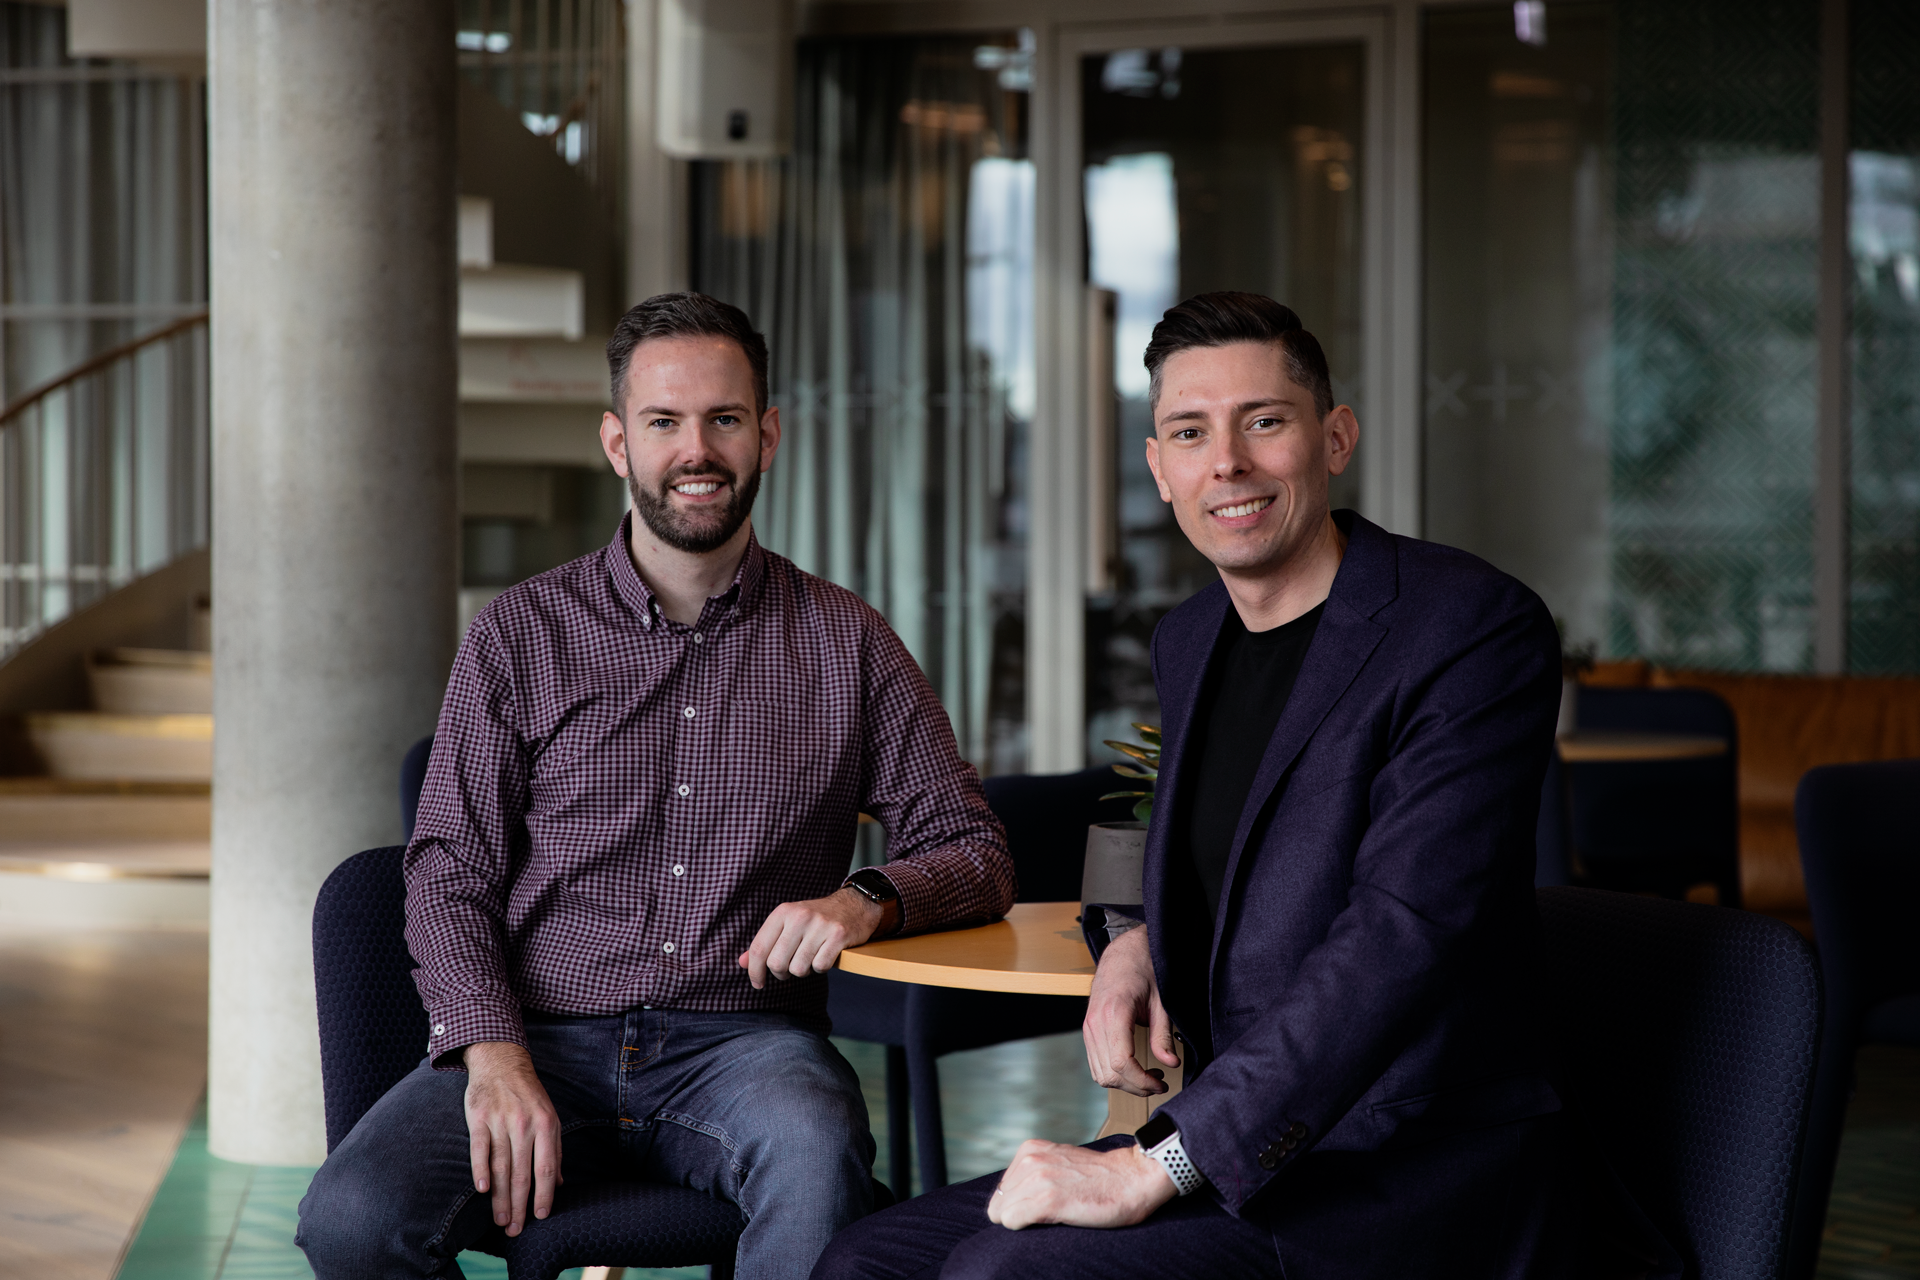 Superscript co-founders, Ben Rose and Cameron Shearer